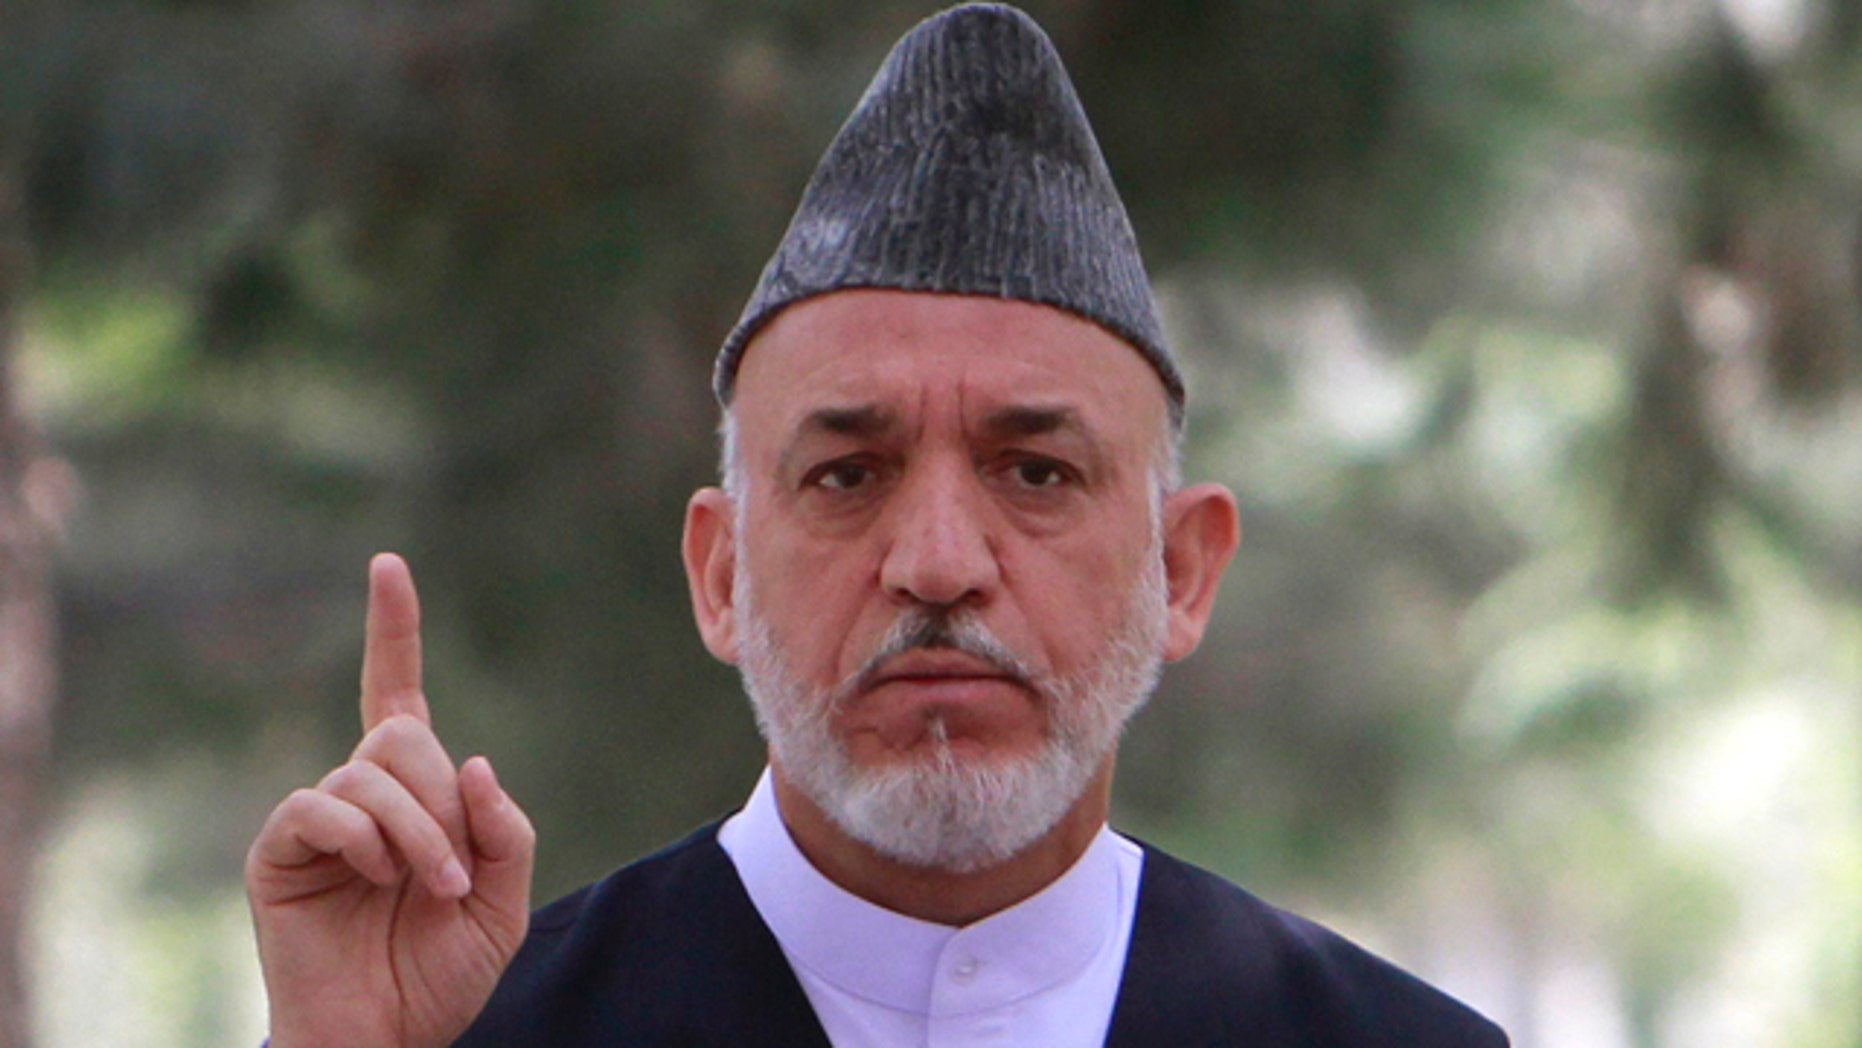 July 26: Afghan President Hamid Karzai speaks during a gathering with high ranking Afghan military officials at the presidential palace in Kabul, Afghanistan.